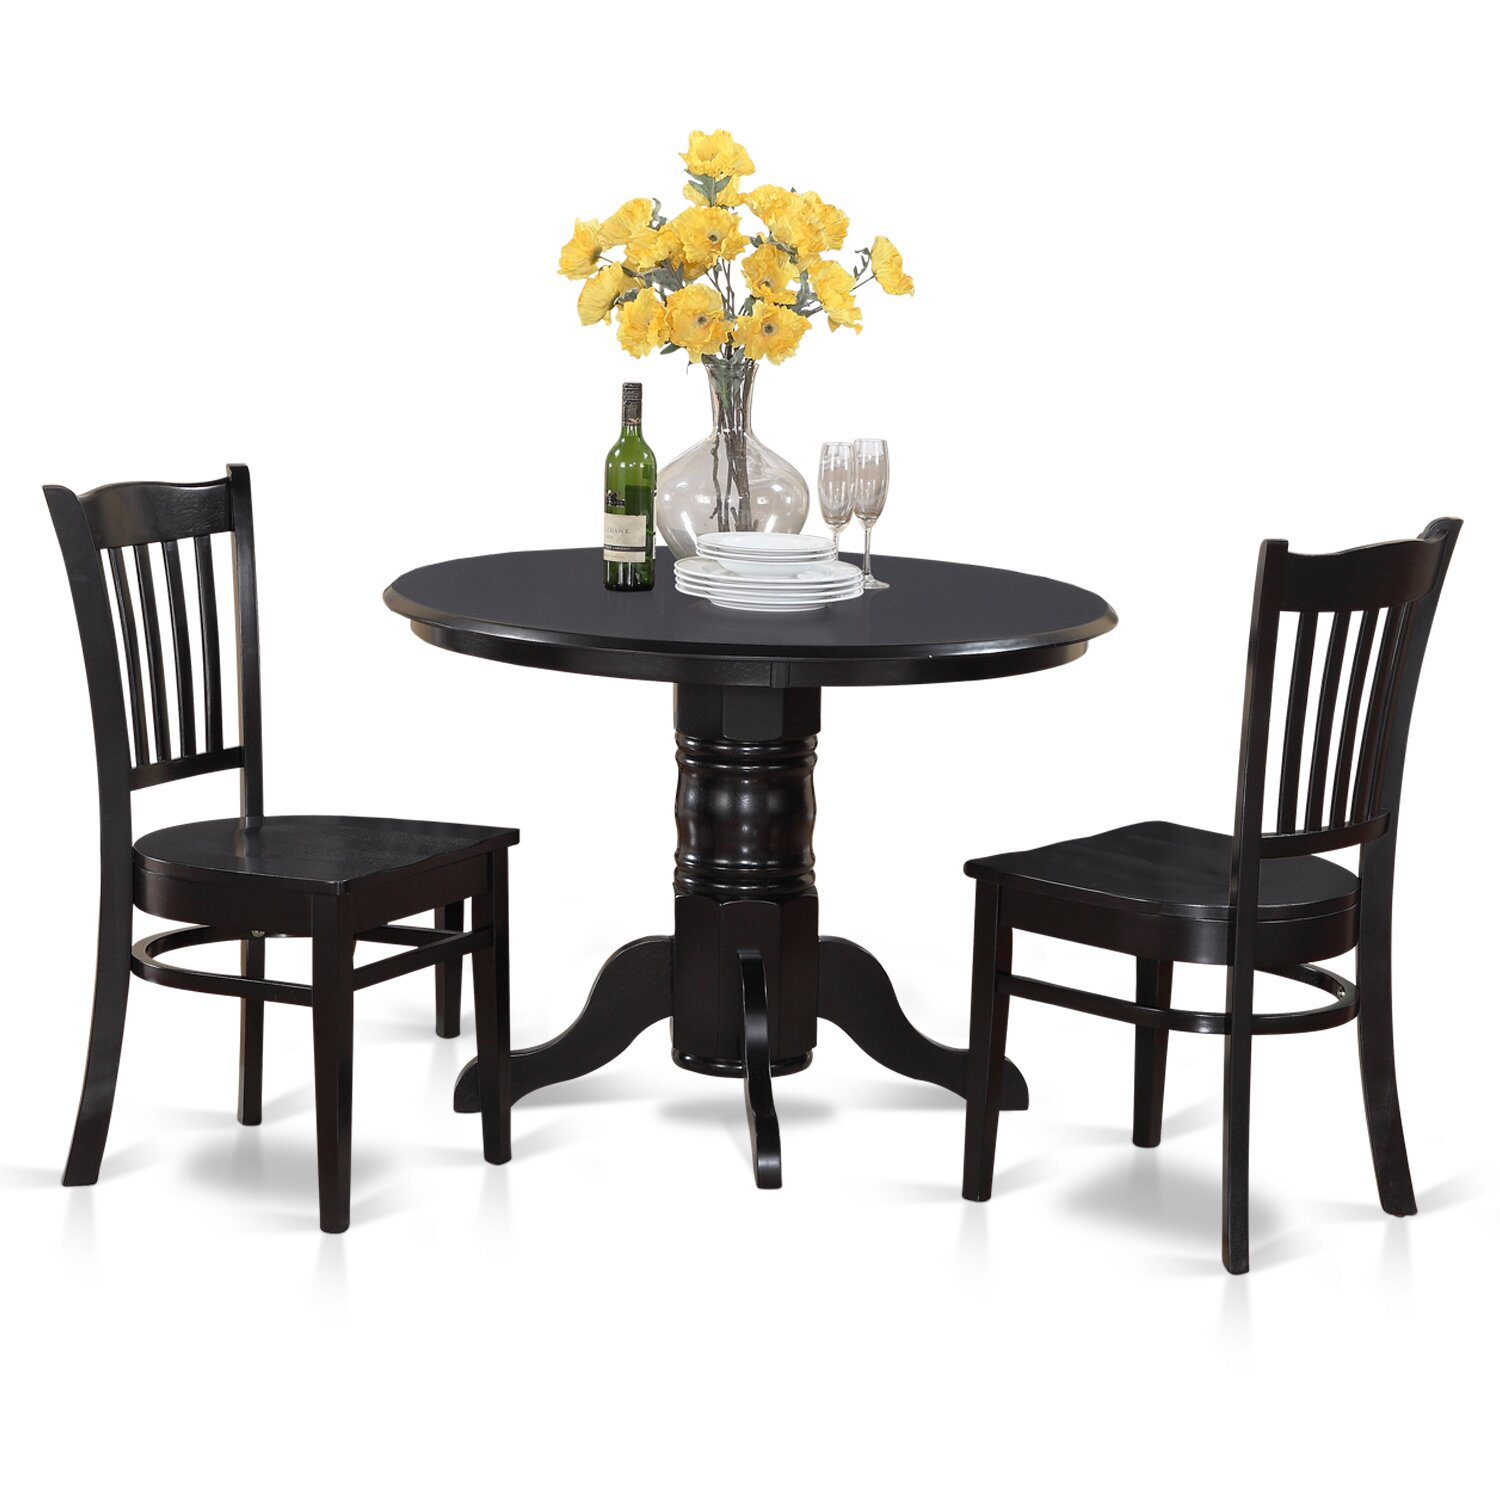 Wooden Importers 3 Piece Dining Set Reviews: Wooden Importers Shelton 3 Piece Dining Set & Reviews